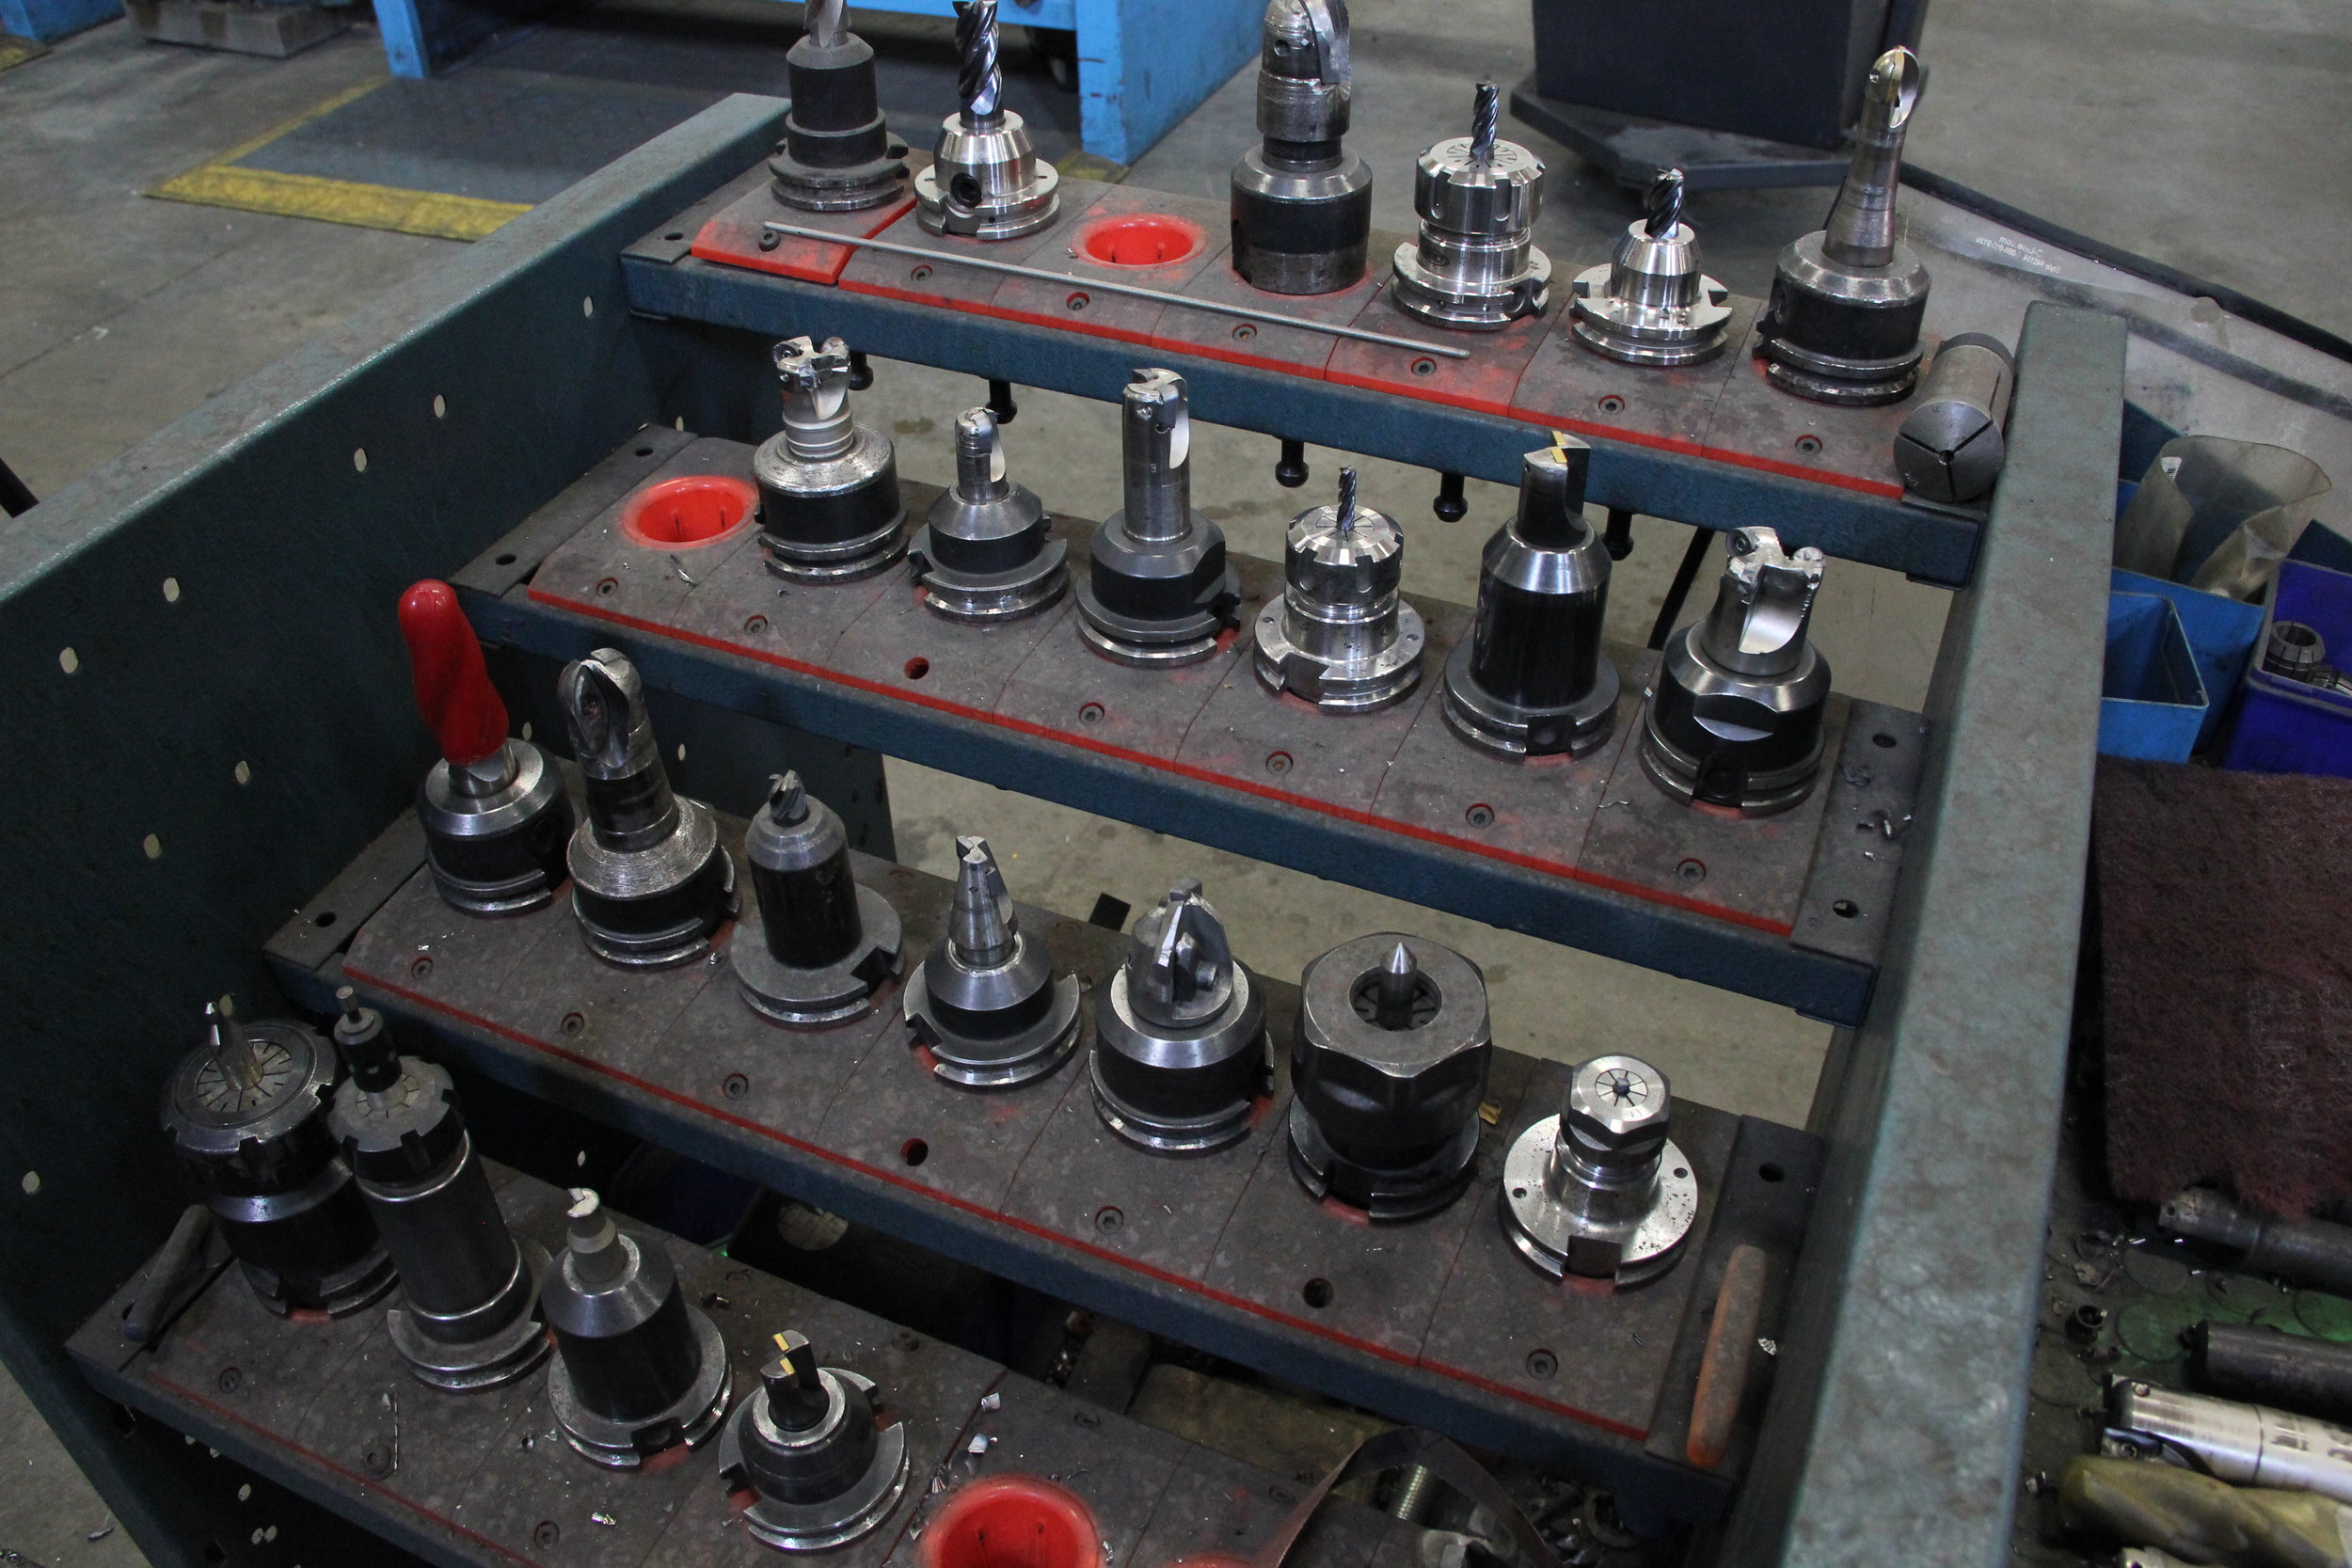 Quality Tooling - Incorporating only top of the line brands in tooling and production, we offer you peace of mind when it comes to choosing us.